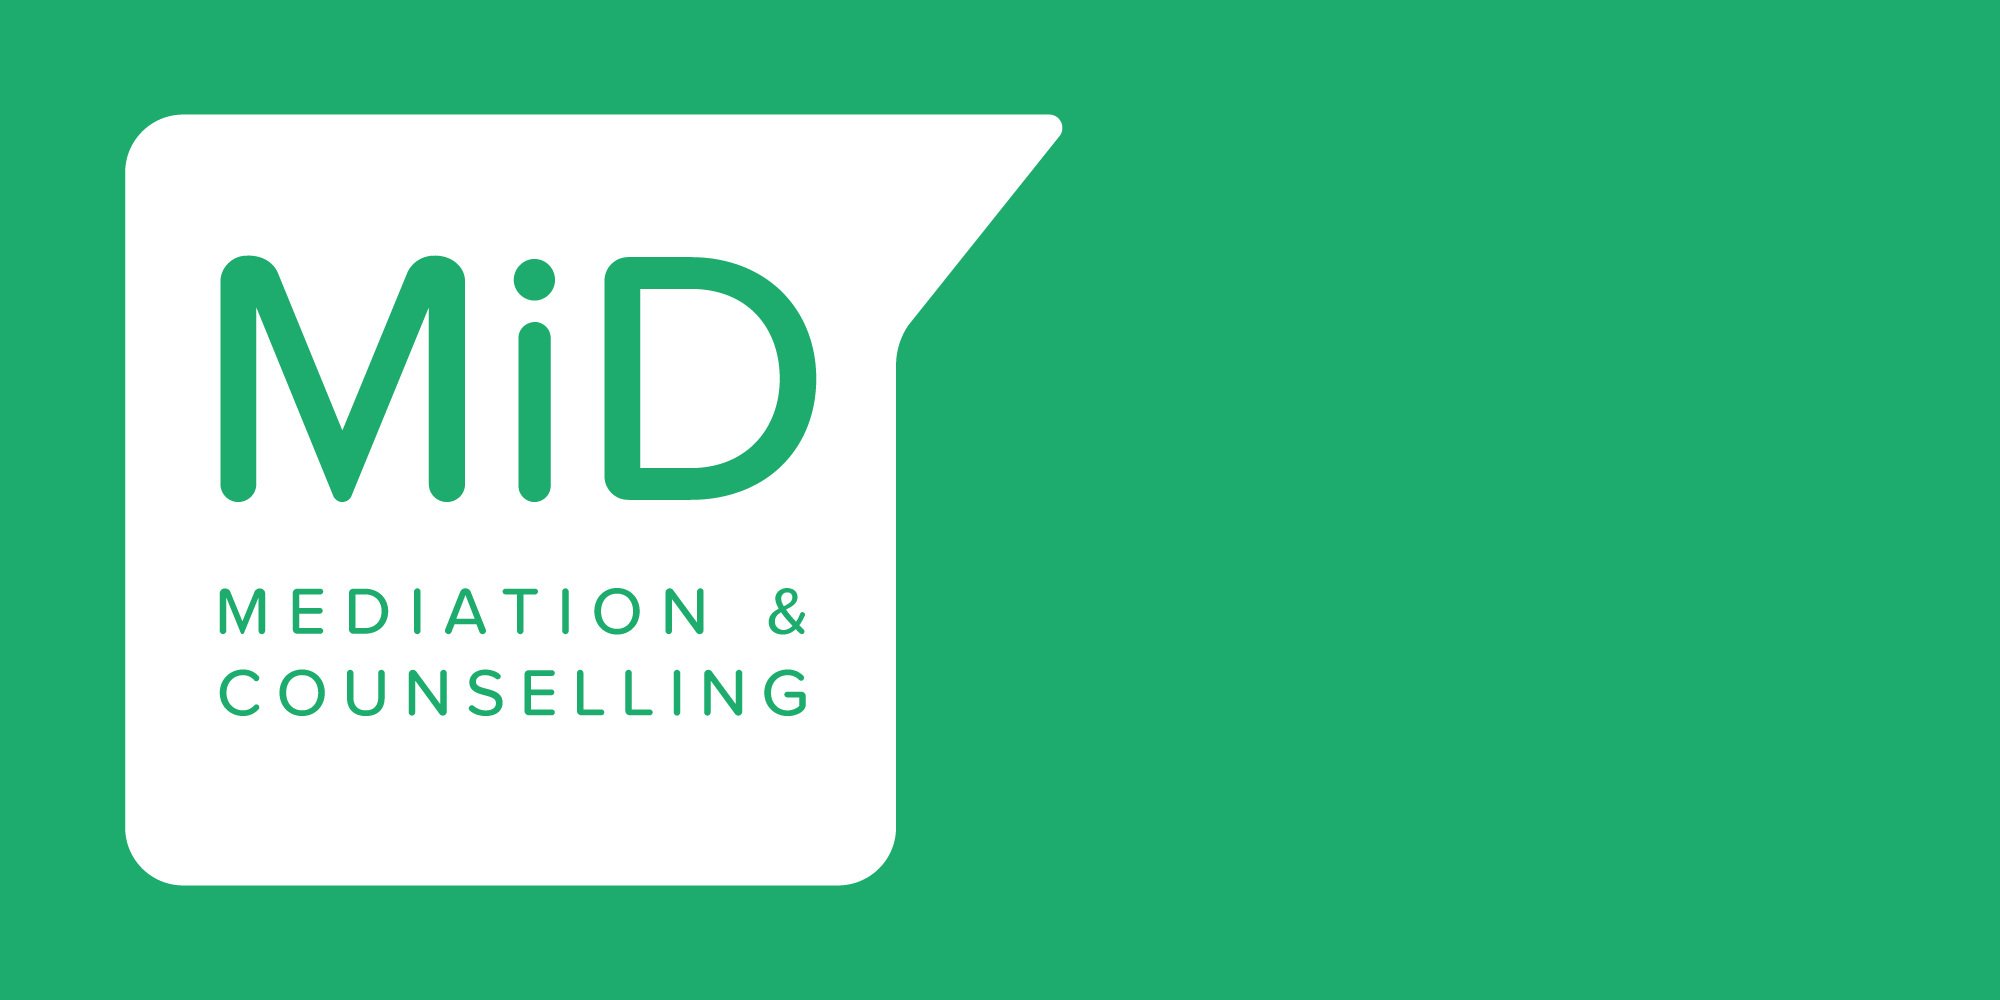 Brand identity design for MiD, London based Mediation and Counselling